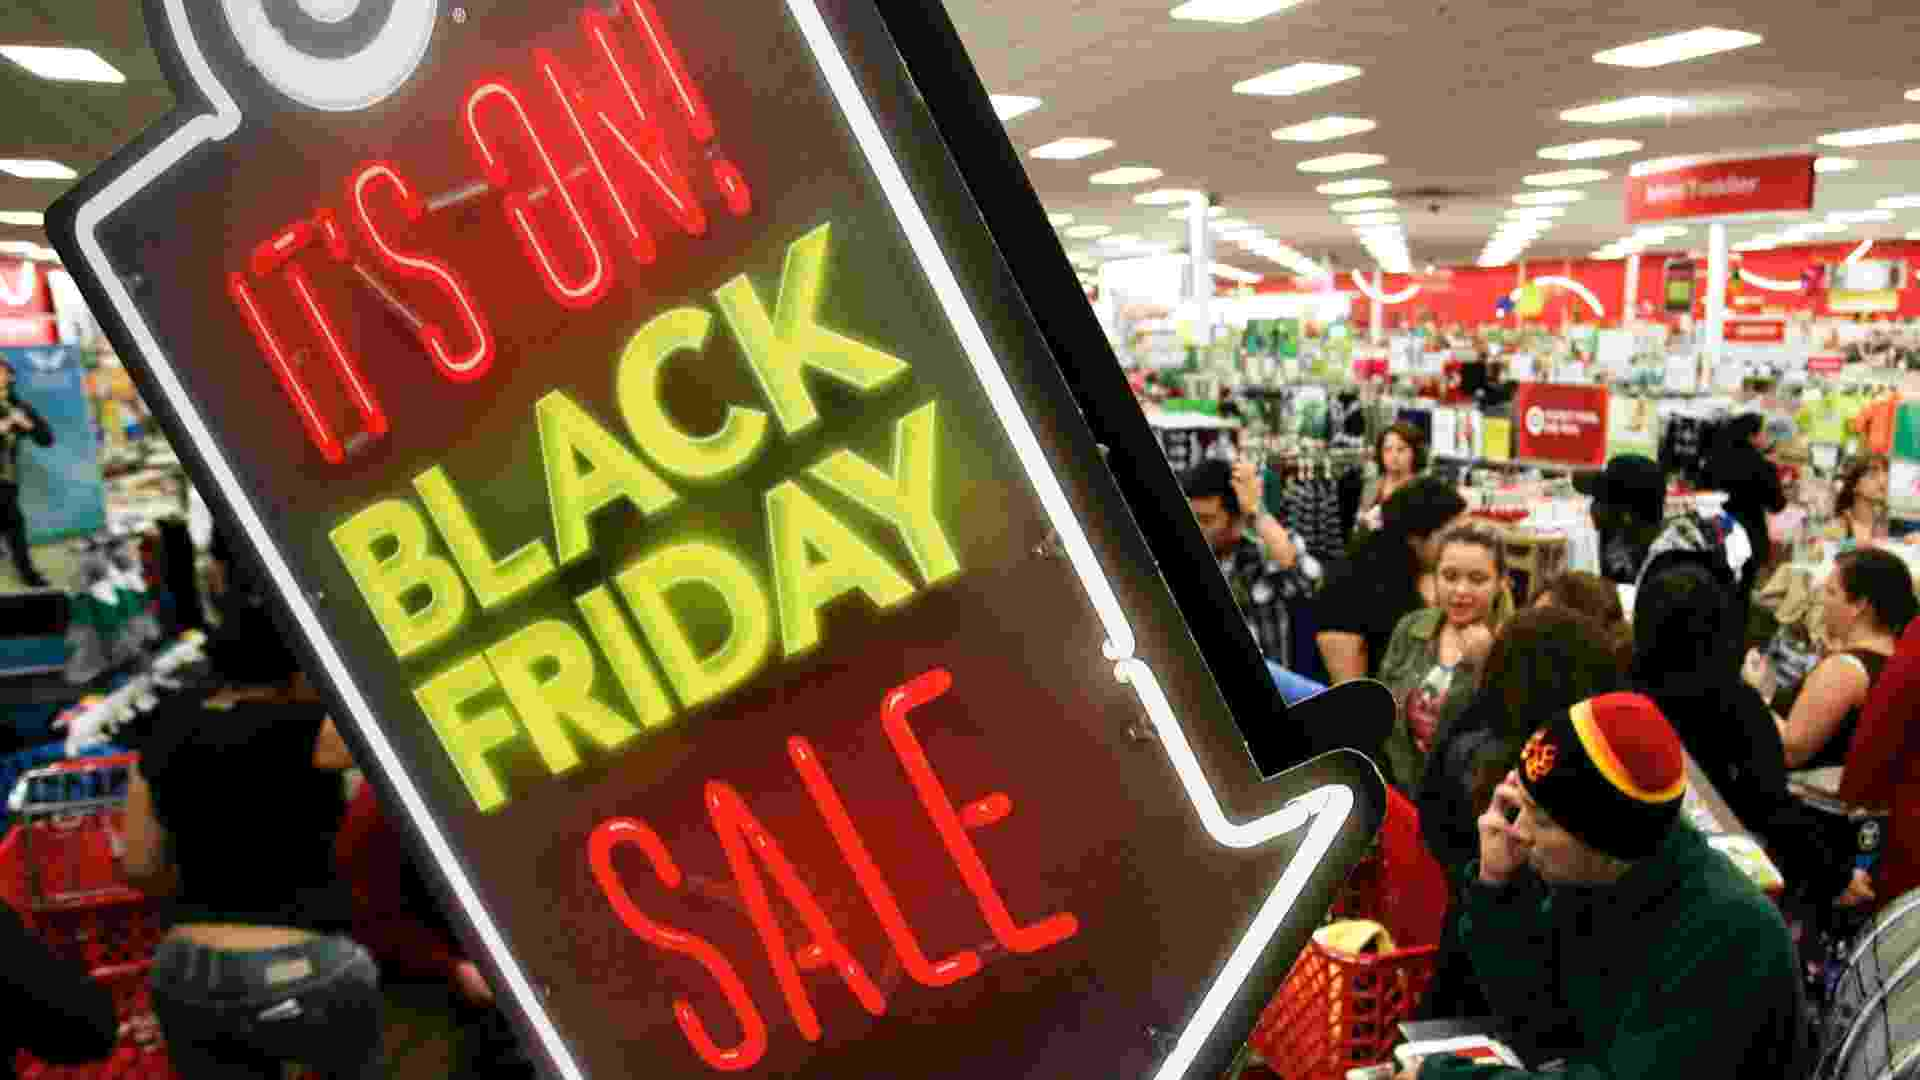 Foto black friday estados Unidos eua  - Jonathan Alcorn/Reuters